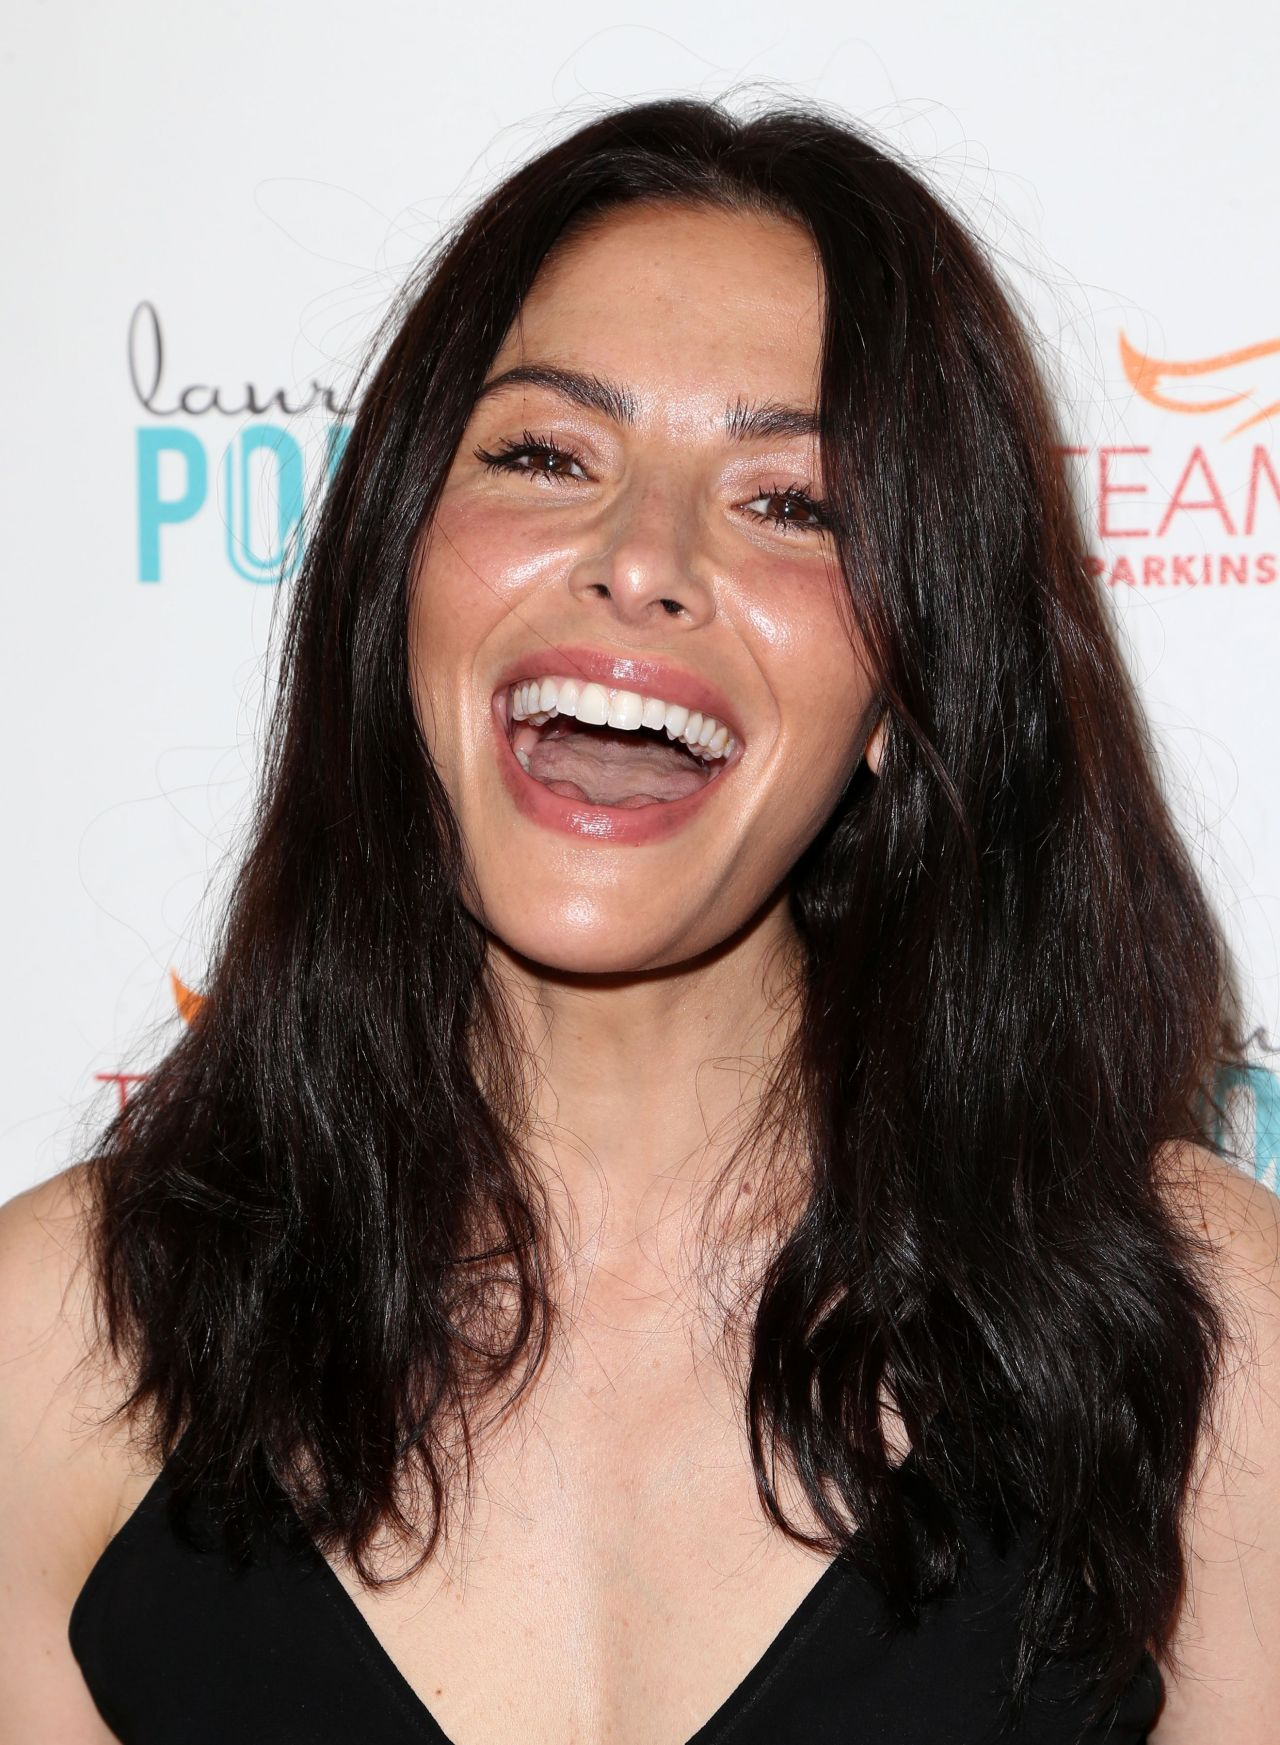 Sarah Shahi Raising The Bar To End Parkinsons